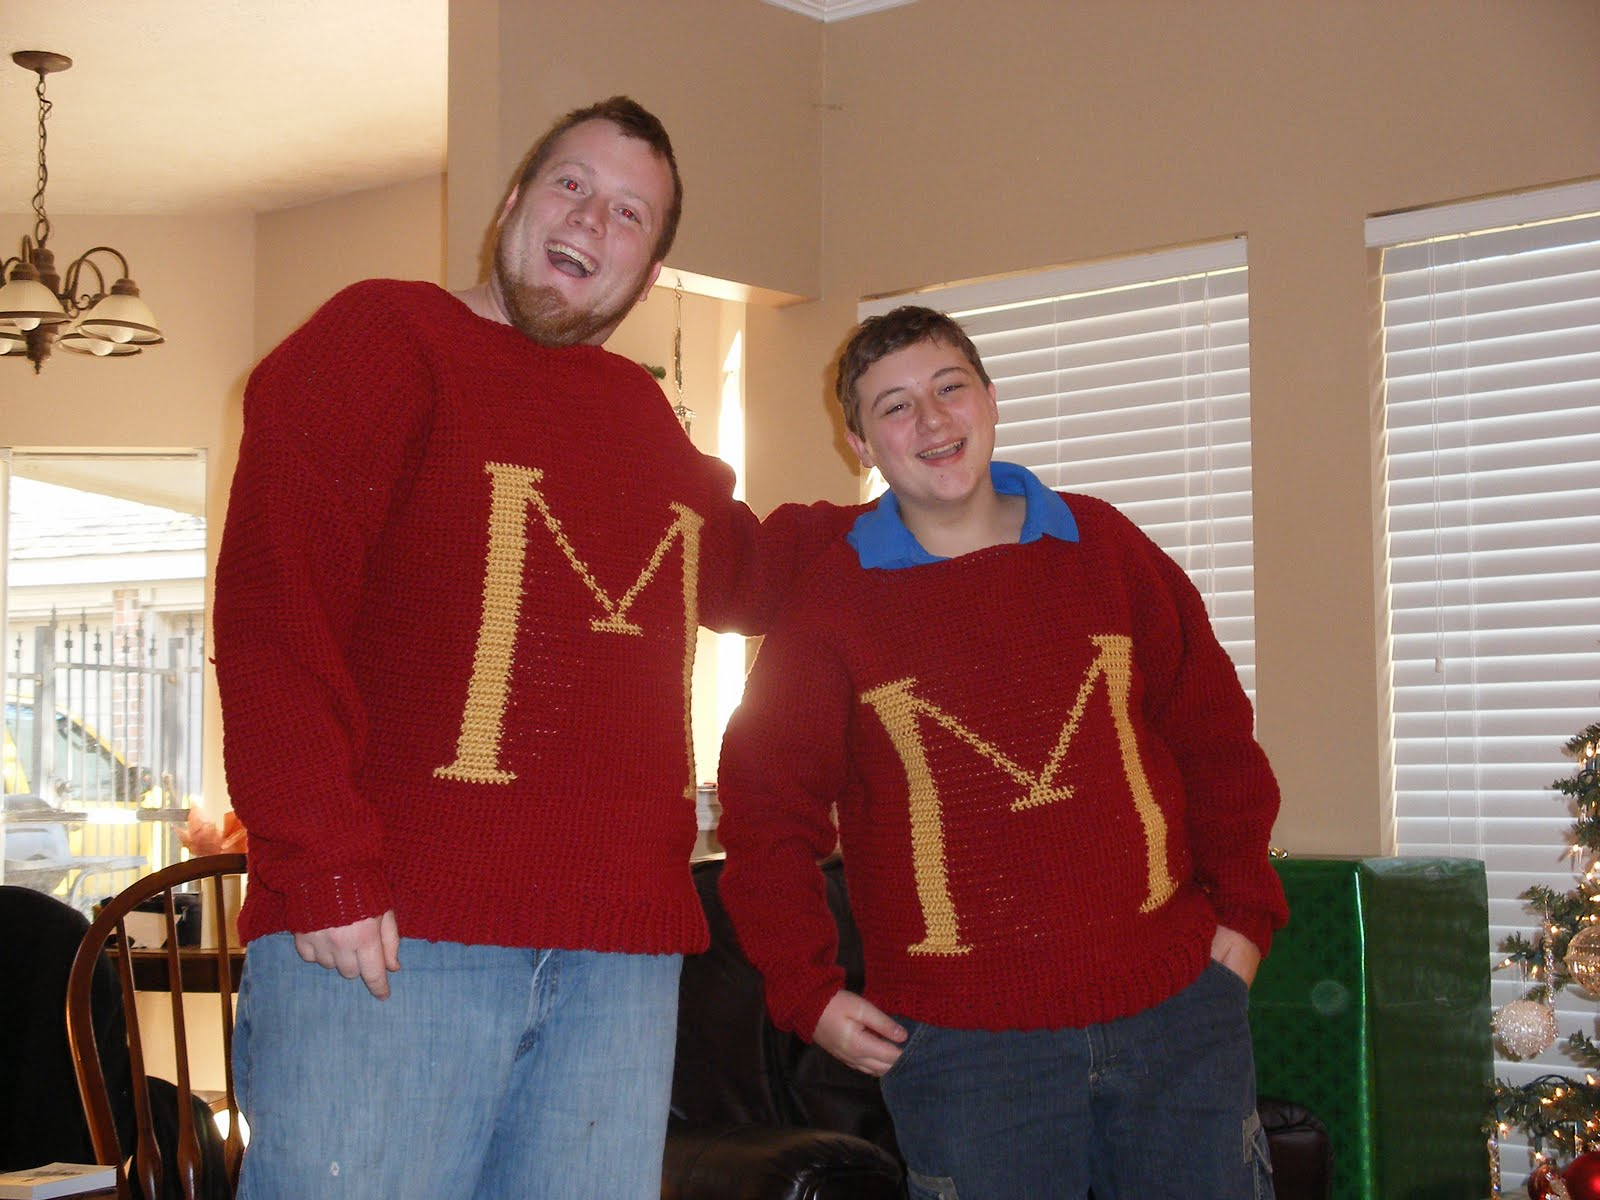 Rediscovering Heirlooms: Harry Potter Sweater and Pattern